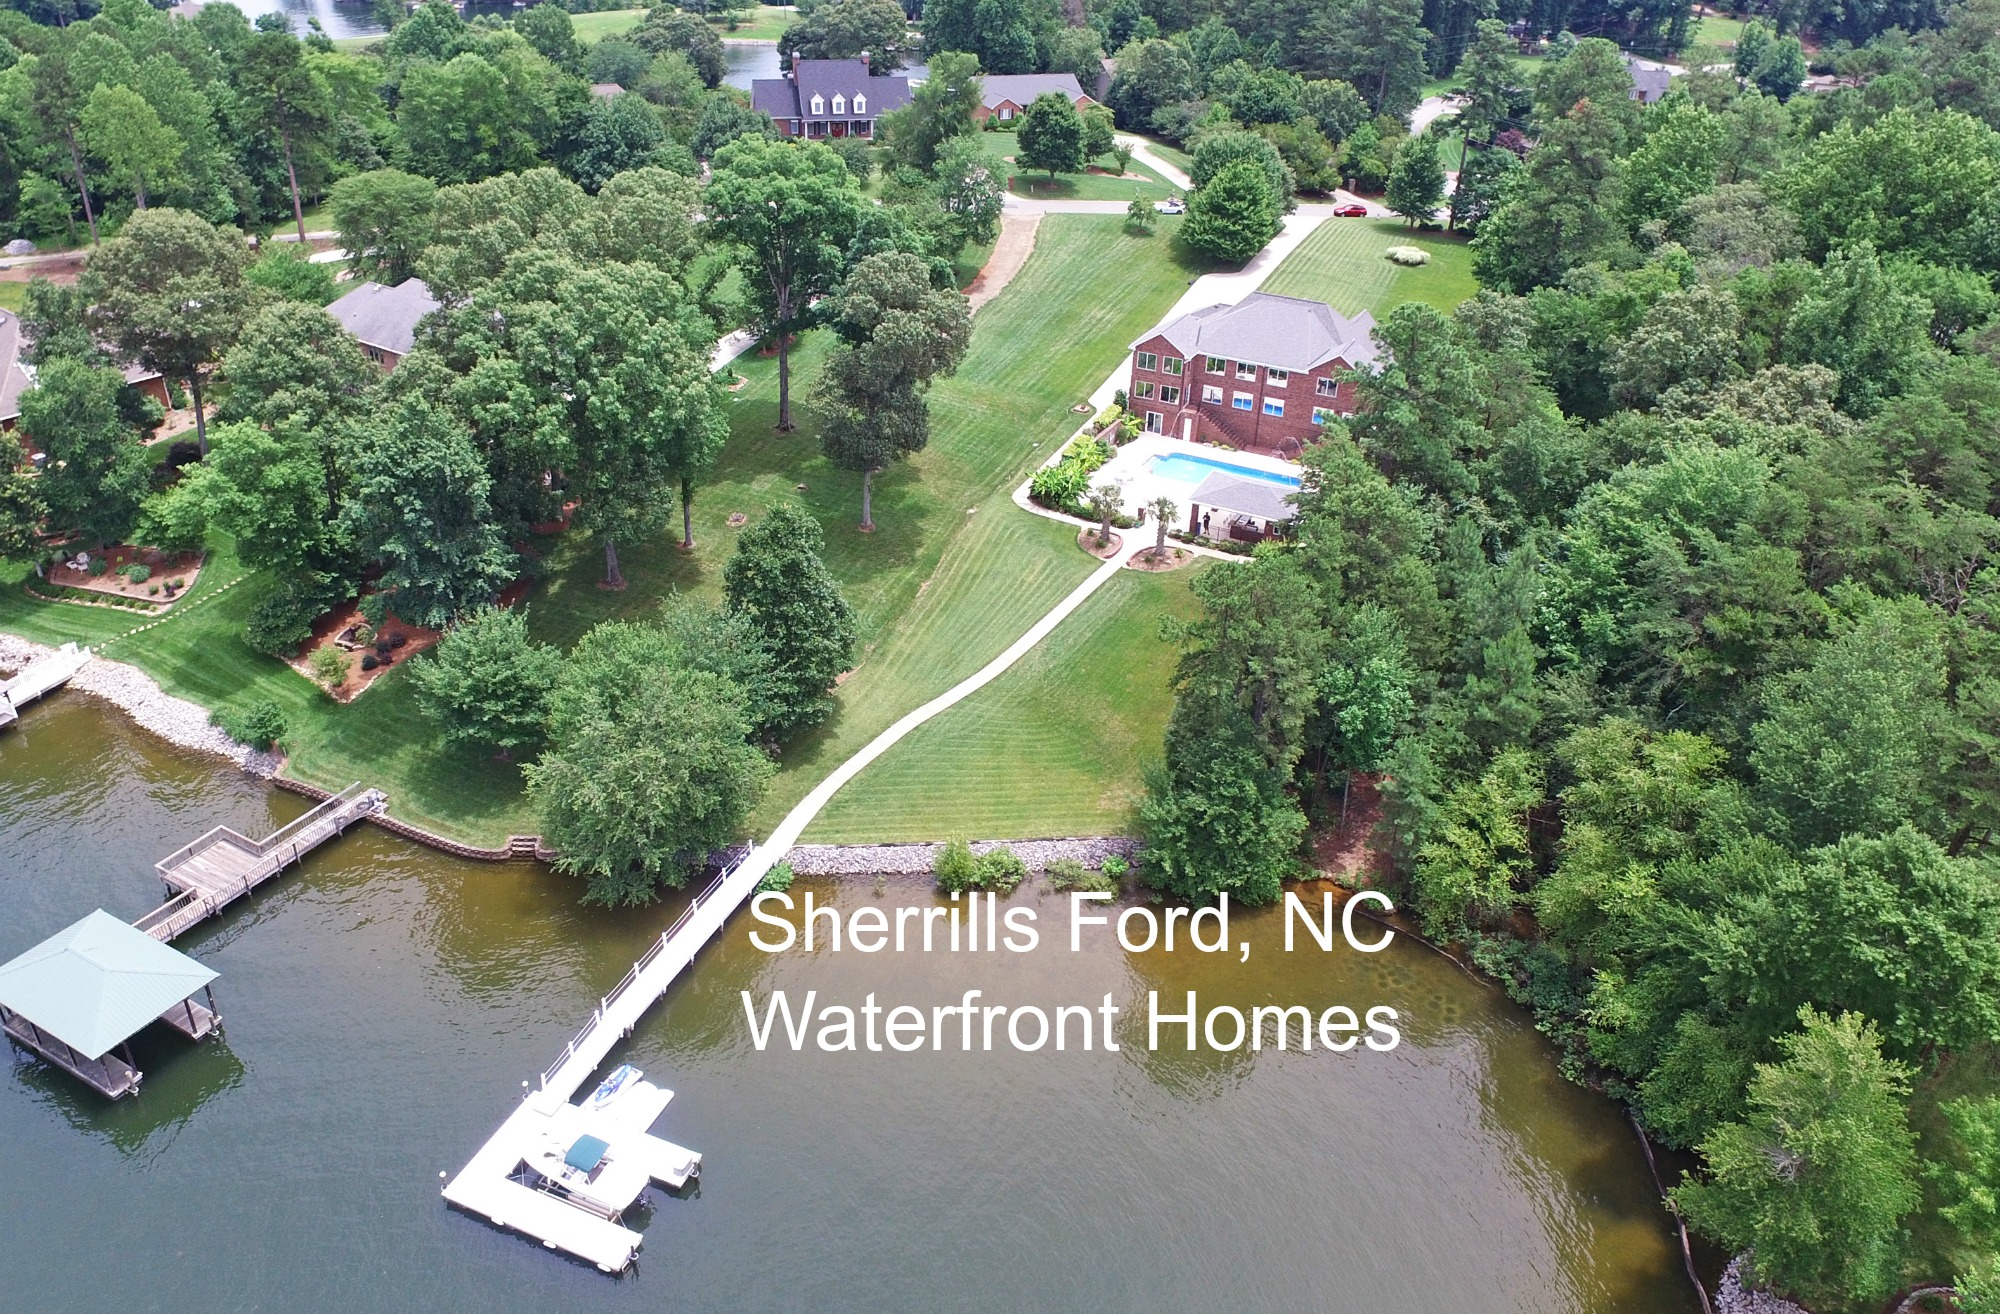 Sherrills Ford, NC Waterfront Homes